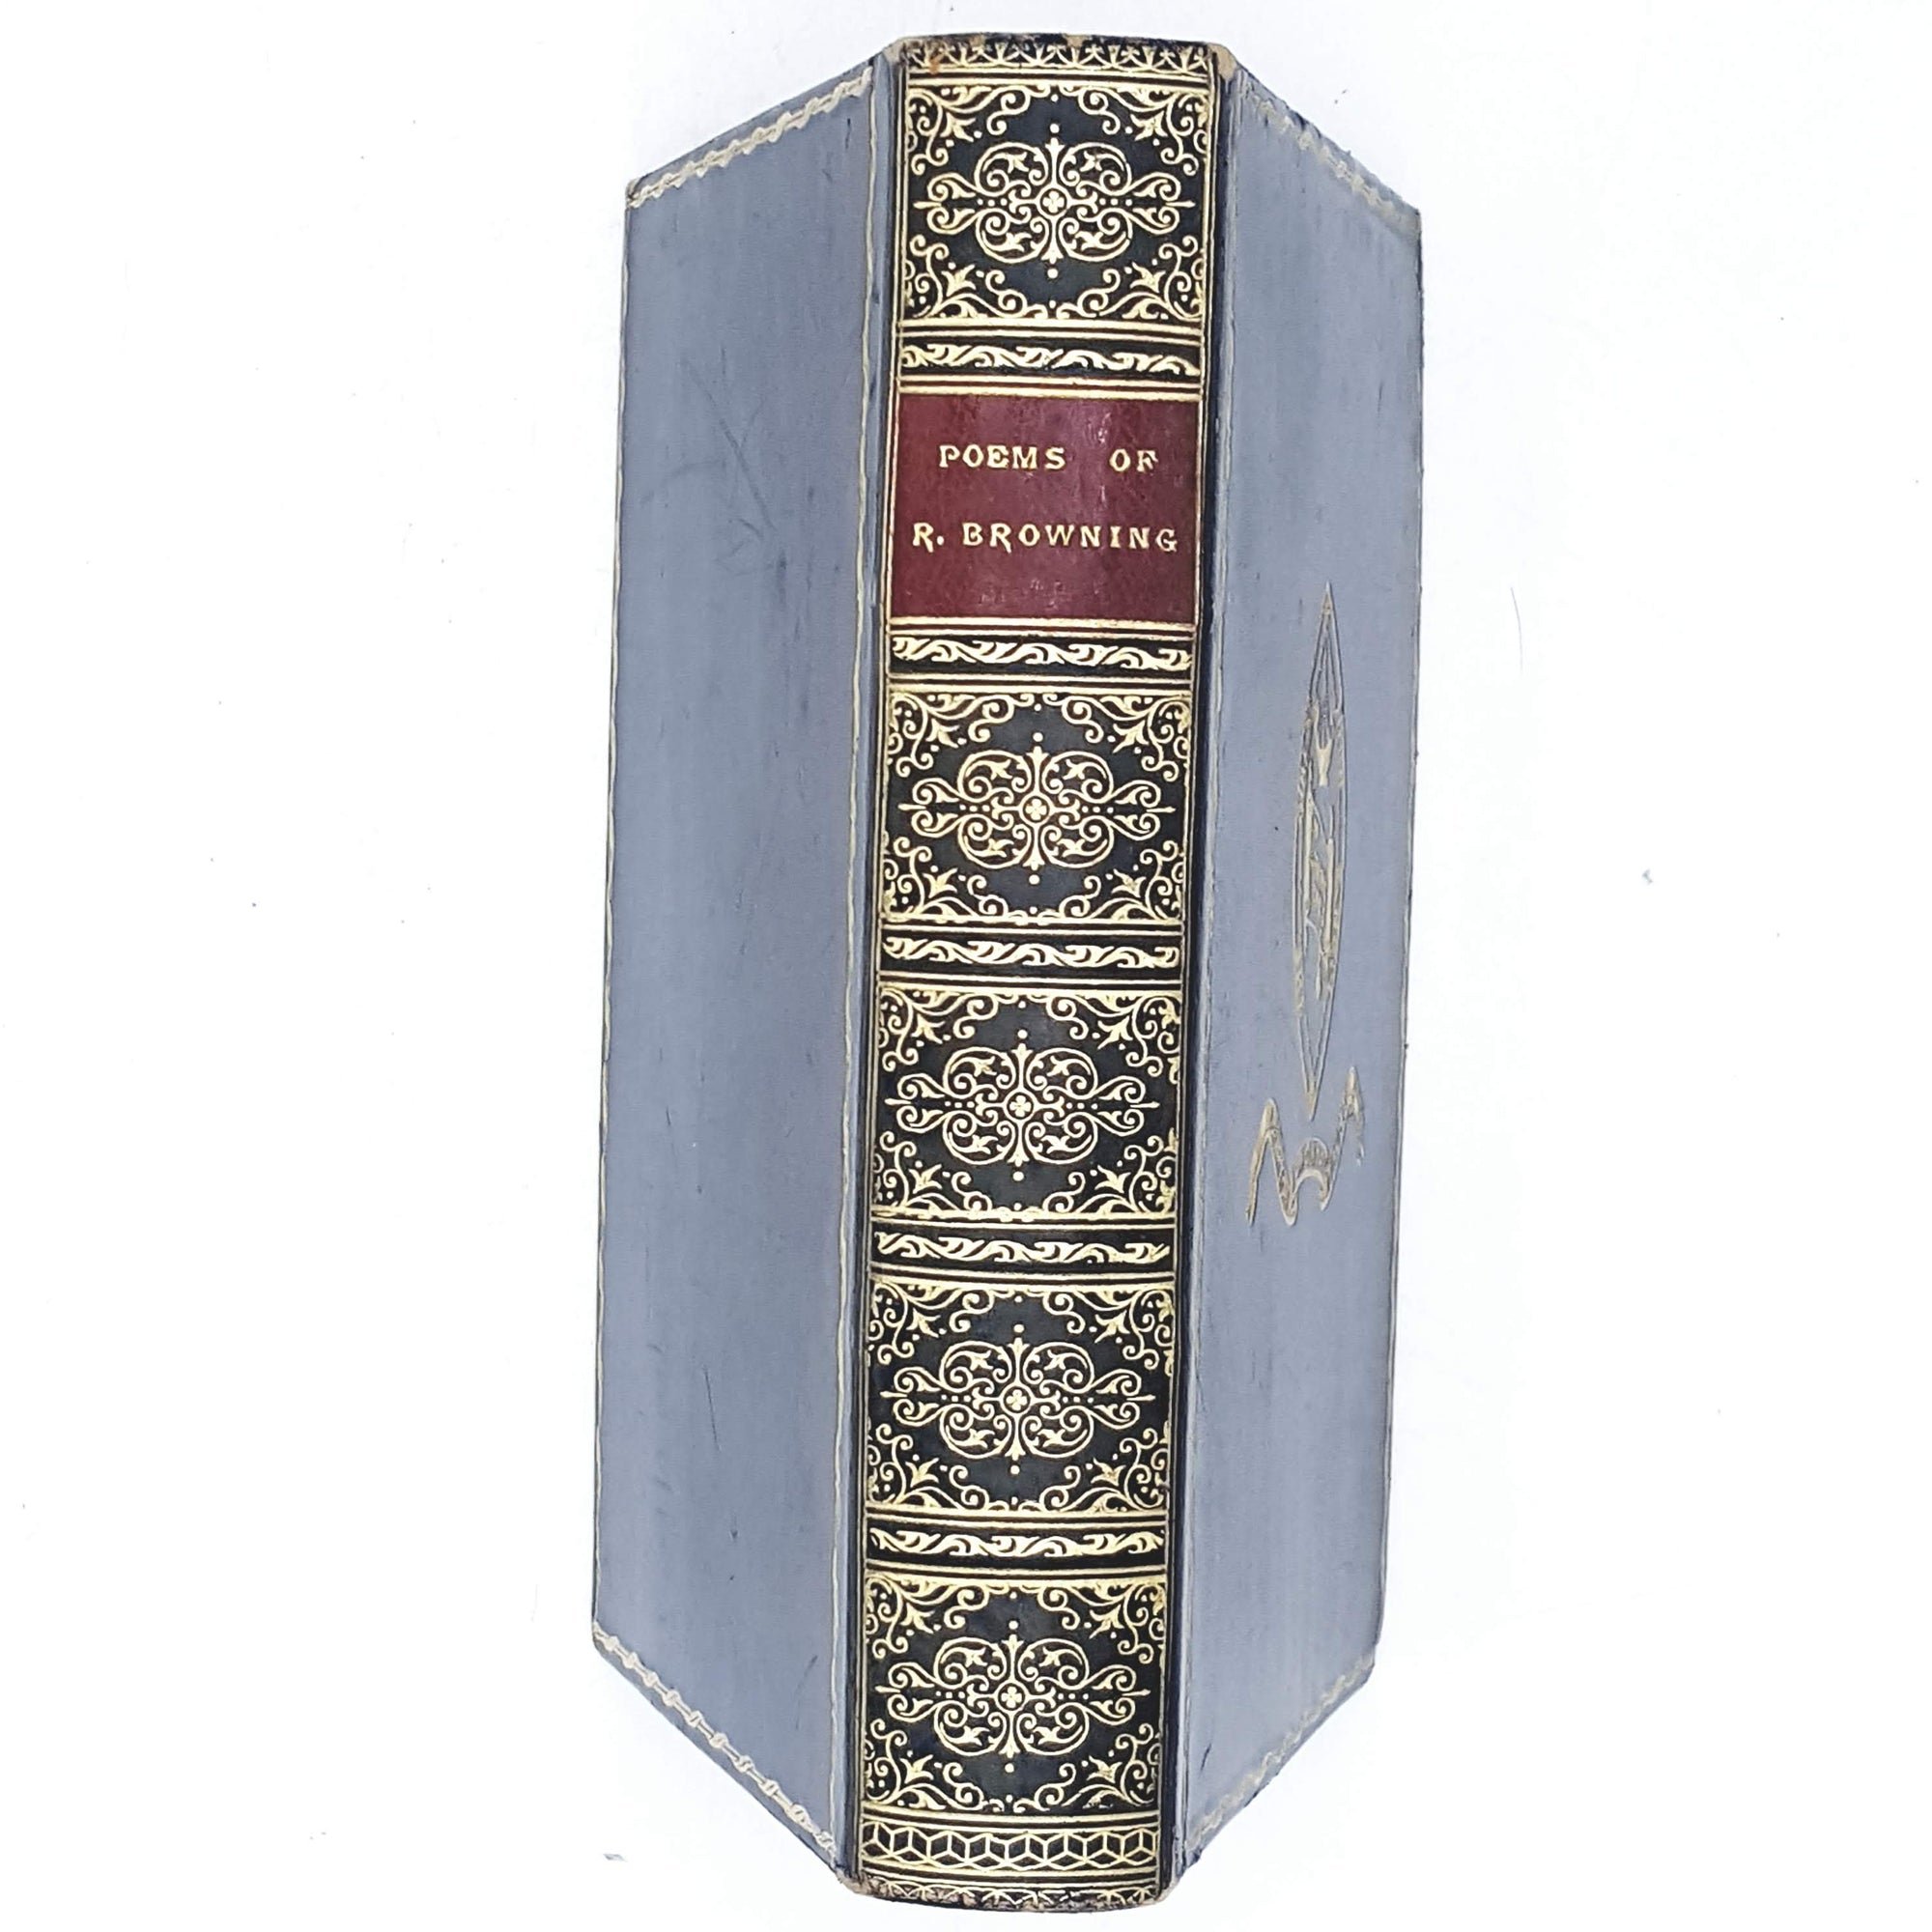 Poems of Robert Browning 1910